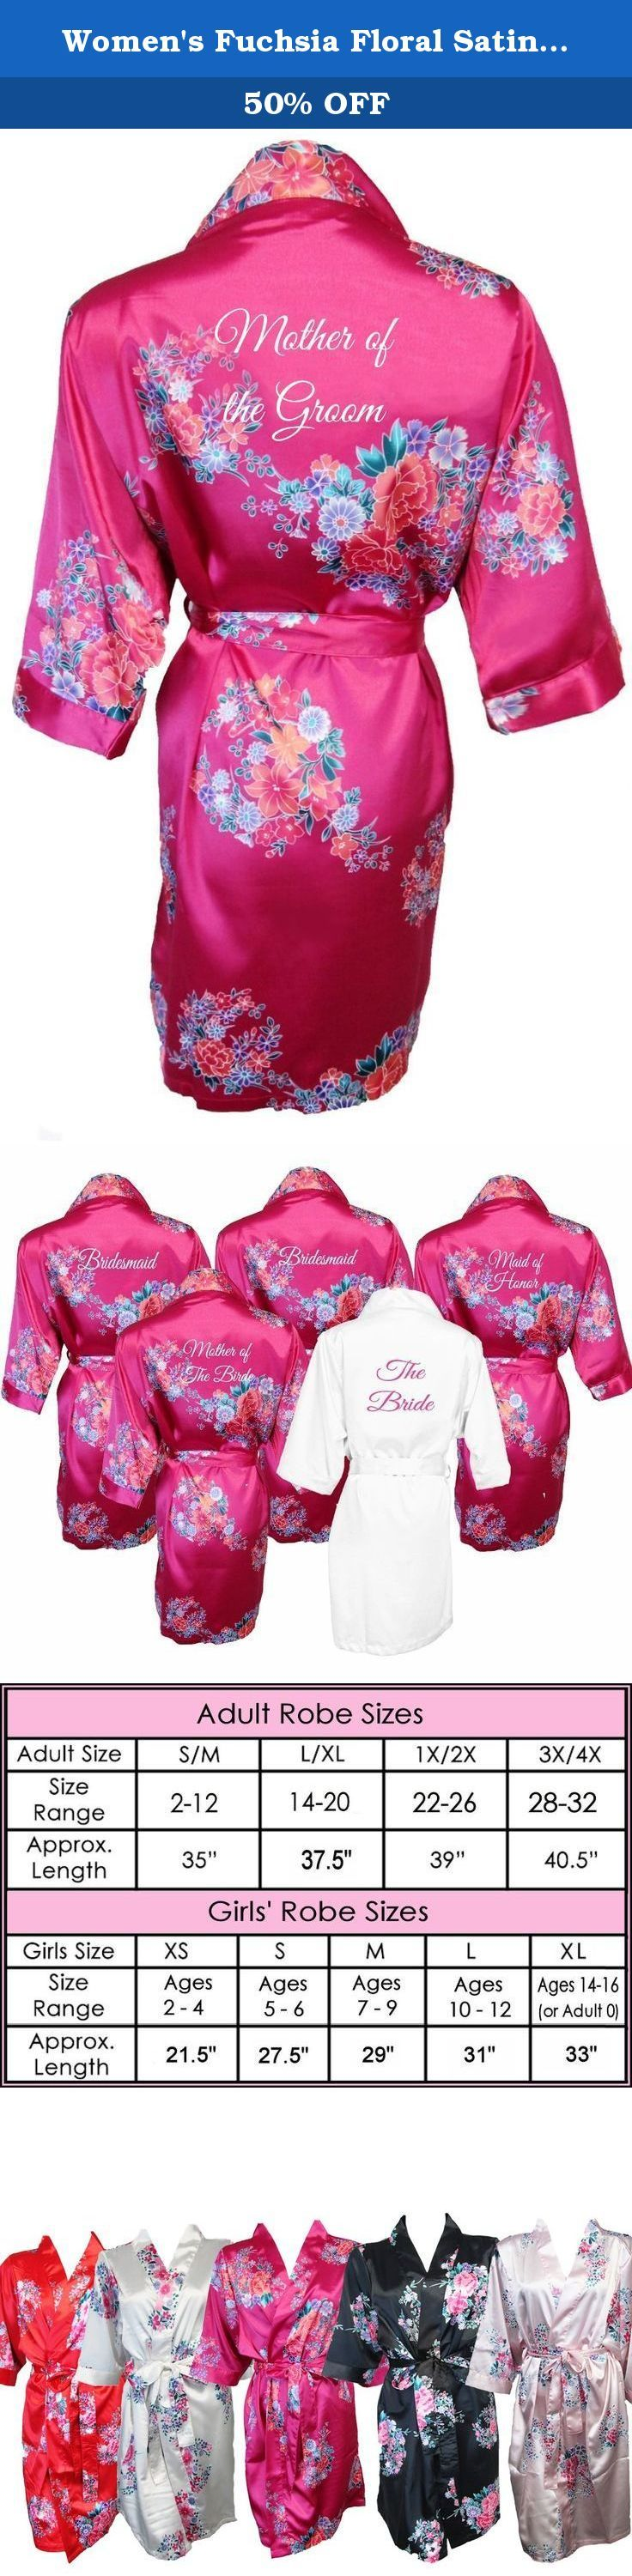 Women's Fuchsia Floral Satin Bridal Vinyl Print Robe Mother of the Groom 1X/2X 22-26. Luxurious Silky Satin Floral Bridal Party Robe with Mother of the Groom title in vinyl print! These luxury satin robes are made of 98% polyester with 2% spandex for the ultimate in comfort. These bridal party robes feature inside ties and a self-fabric belt. Sizes and length are shown on the size chart provided. We offer 5 floral robe colors and a huge variety of bridal party titles, so you can wrap all...